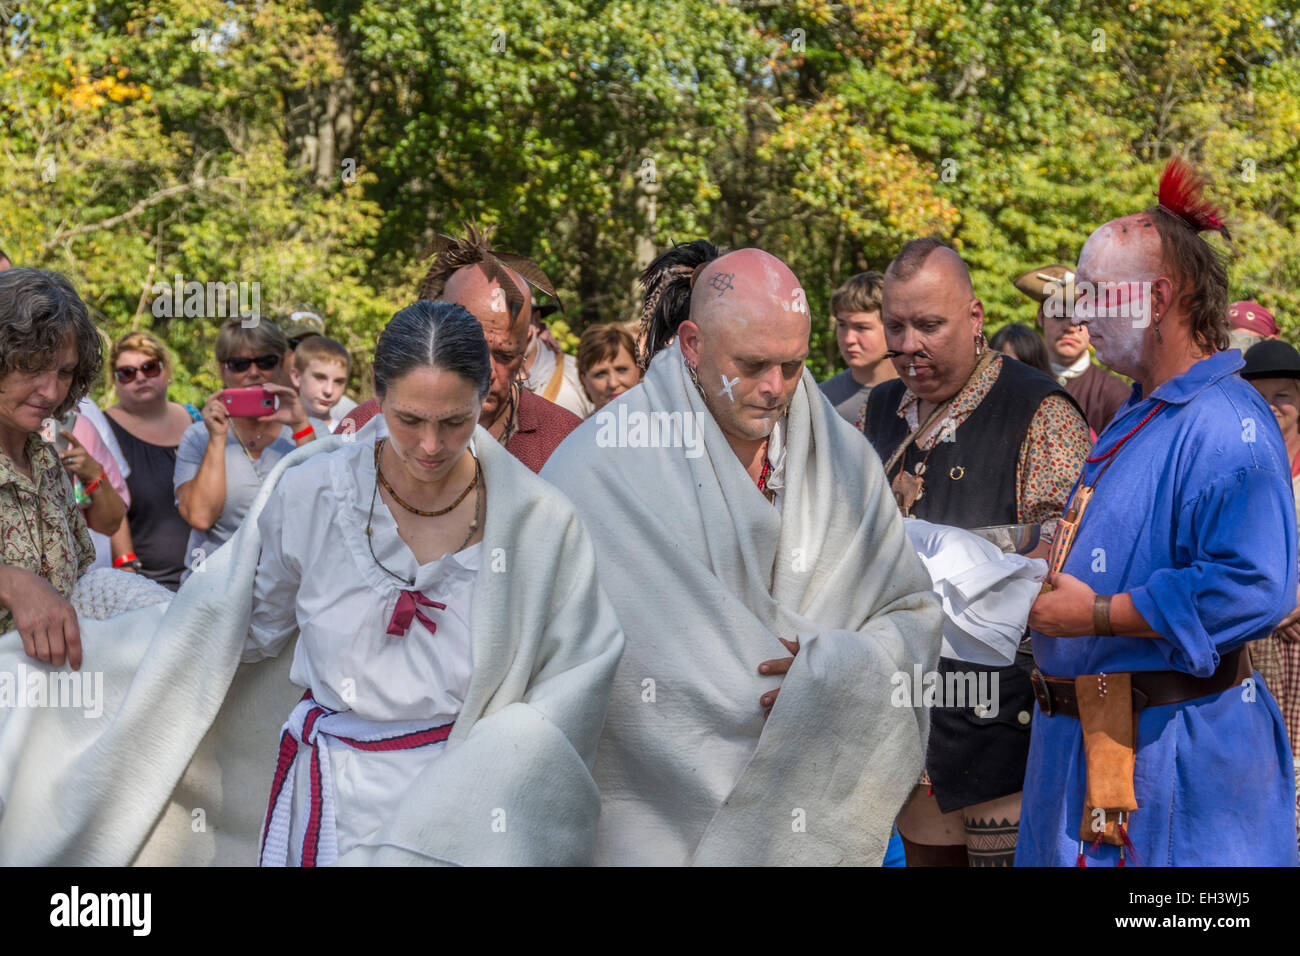 Traditional Cherokee Native American wedding ceremony conducted at